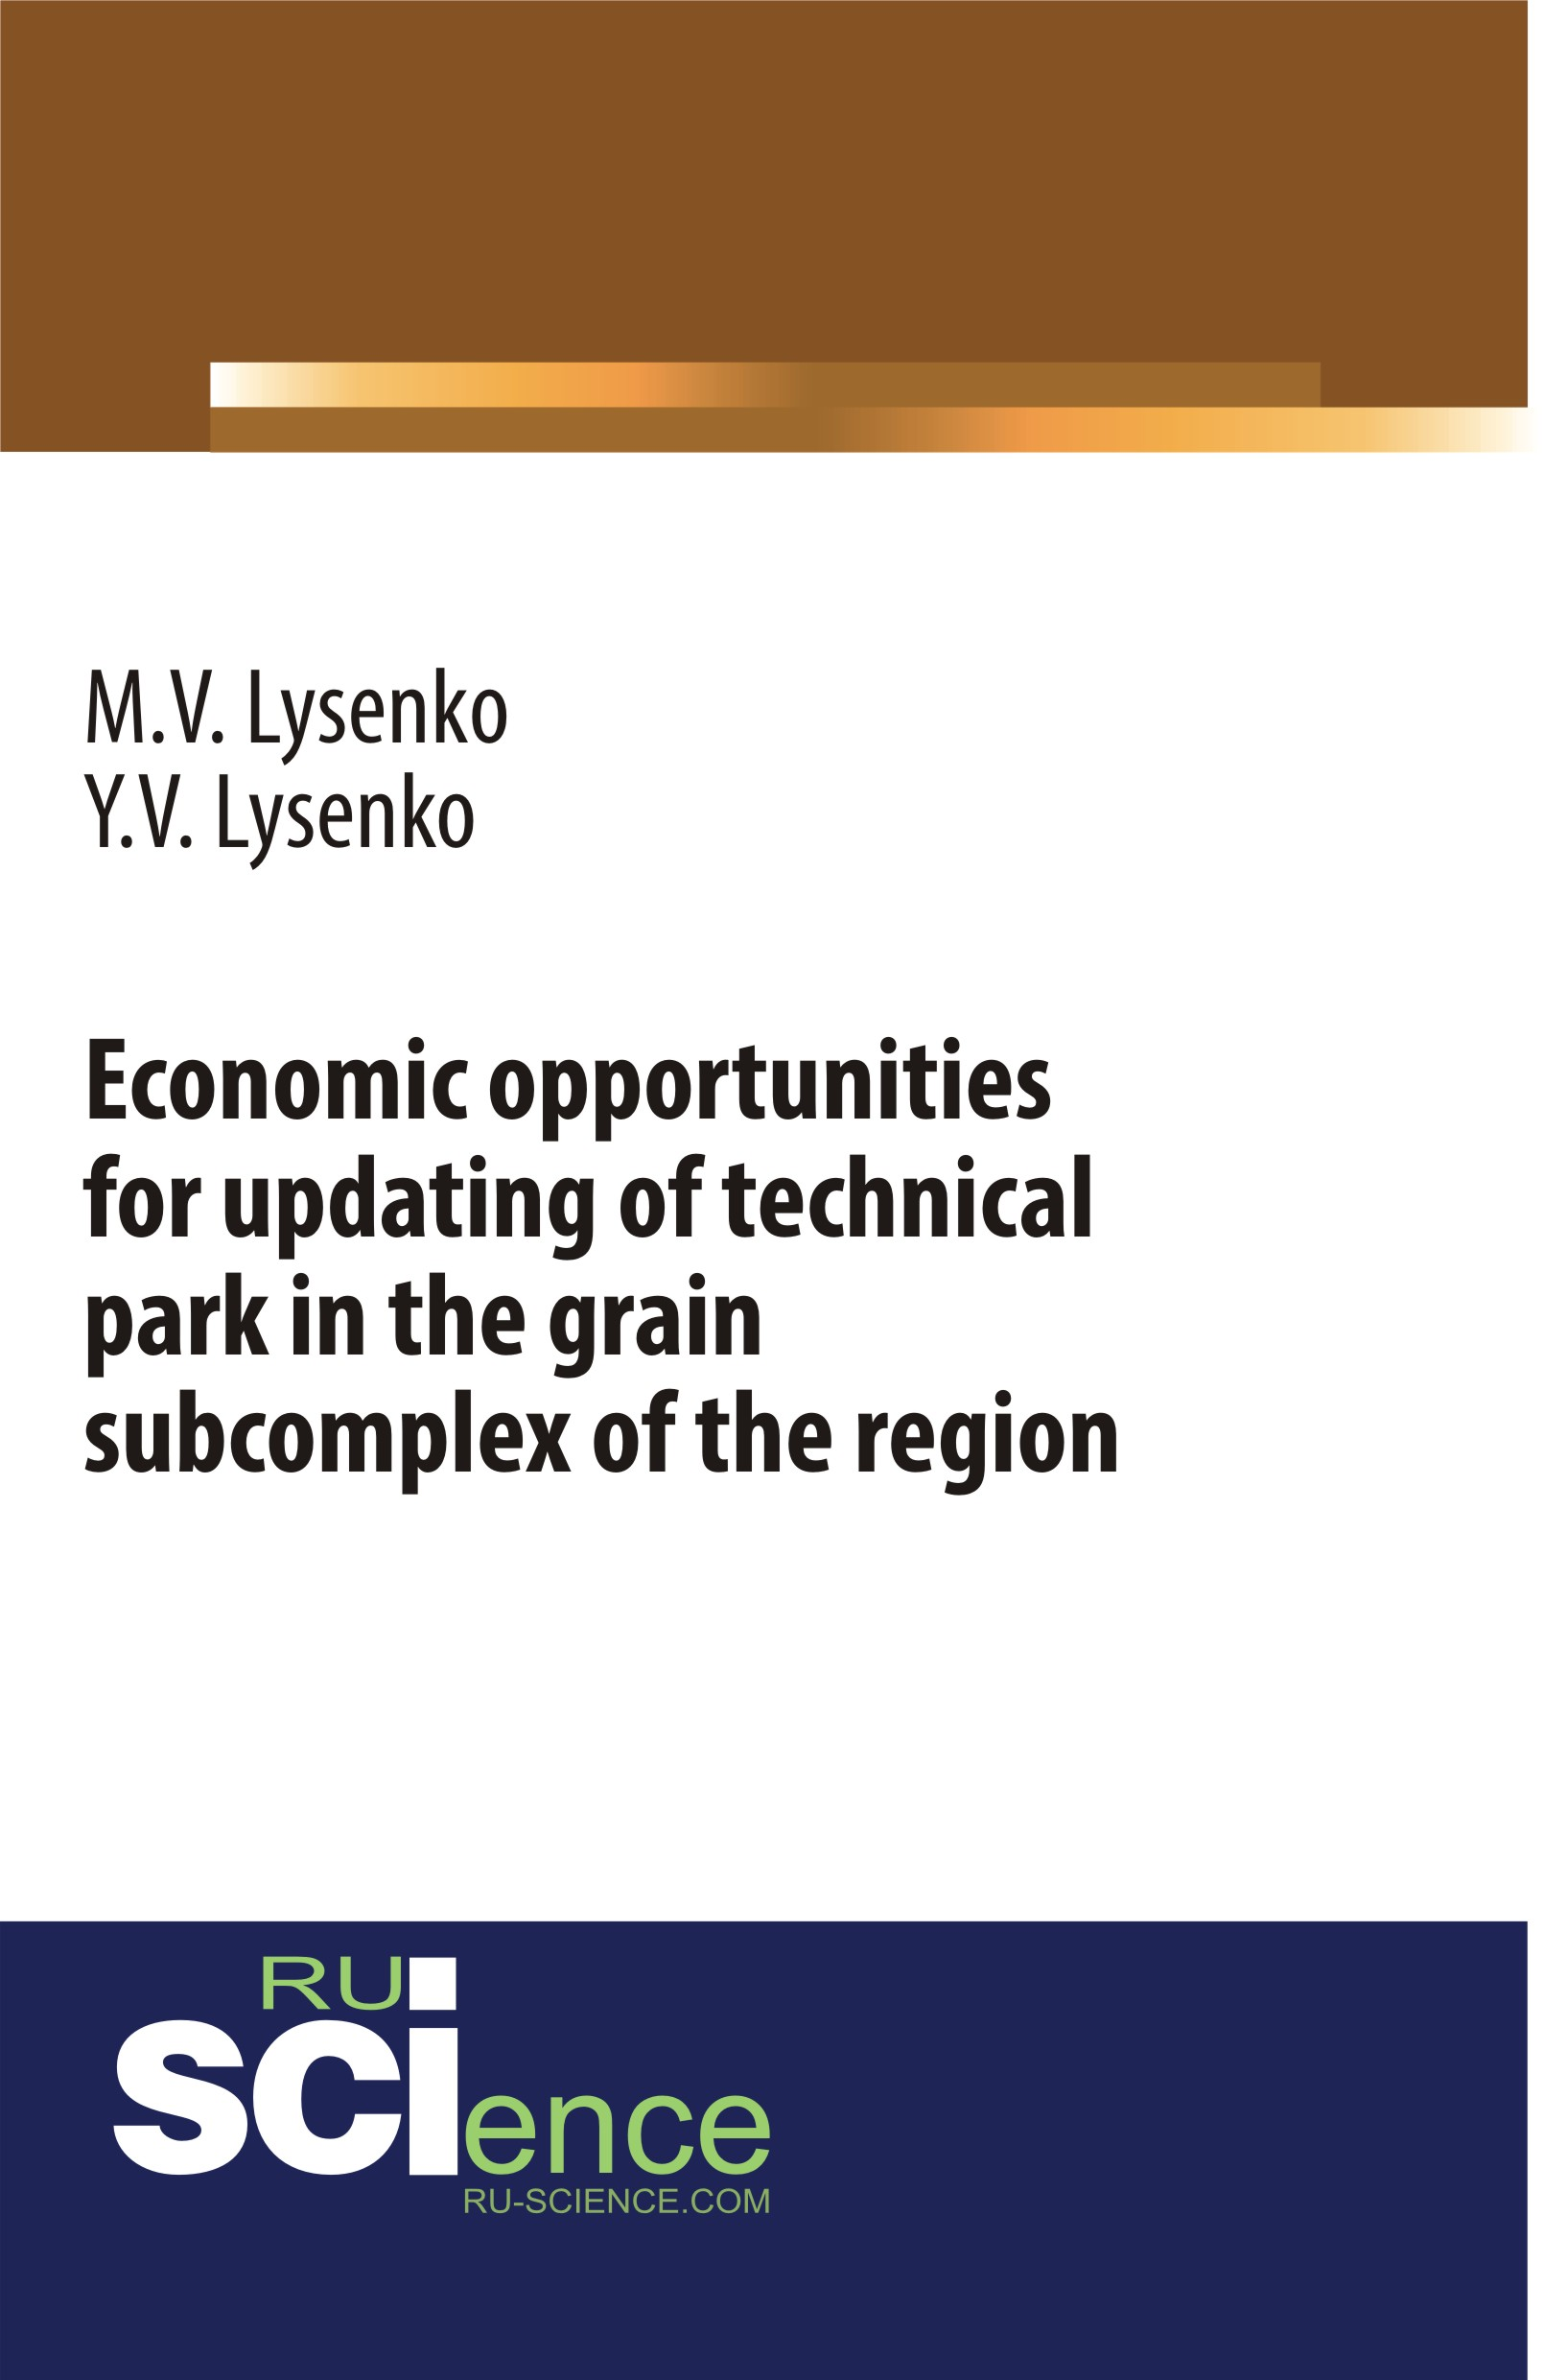 Лысенко М. В. , Лысенко Ю.В. Economic Opportunities for Updating of Technical Рark in the Grain Subcomplex of the Region the evaluation of school organizations